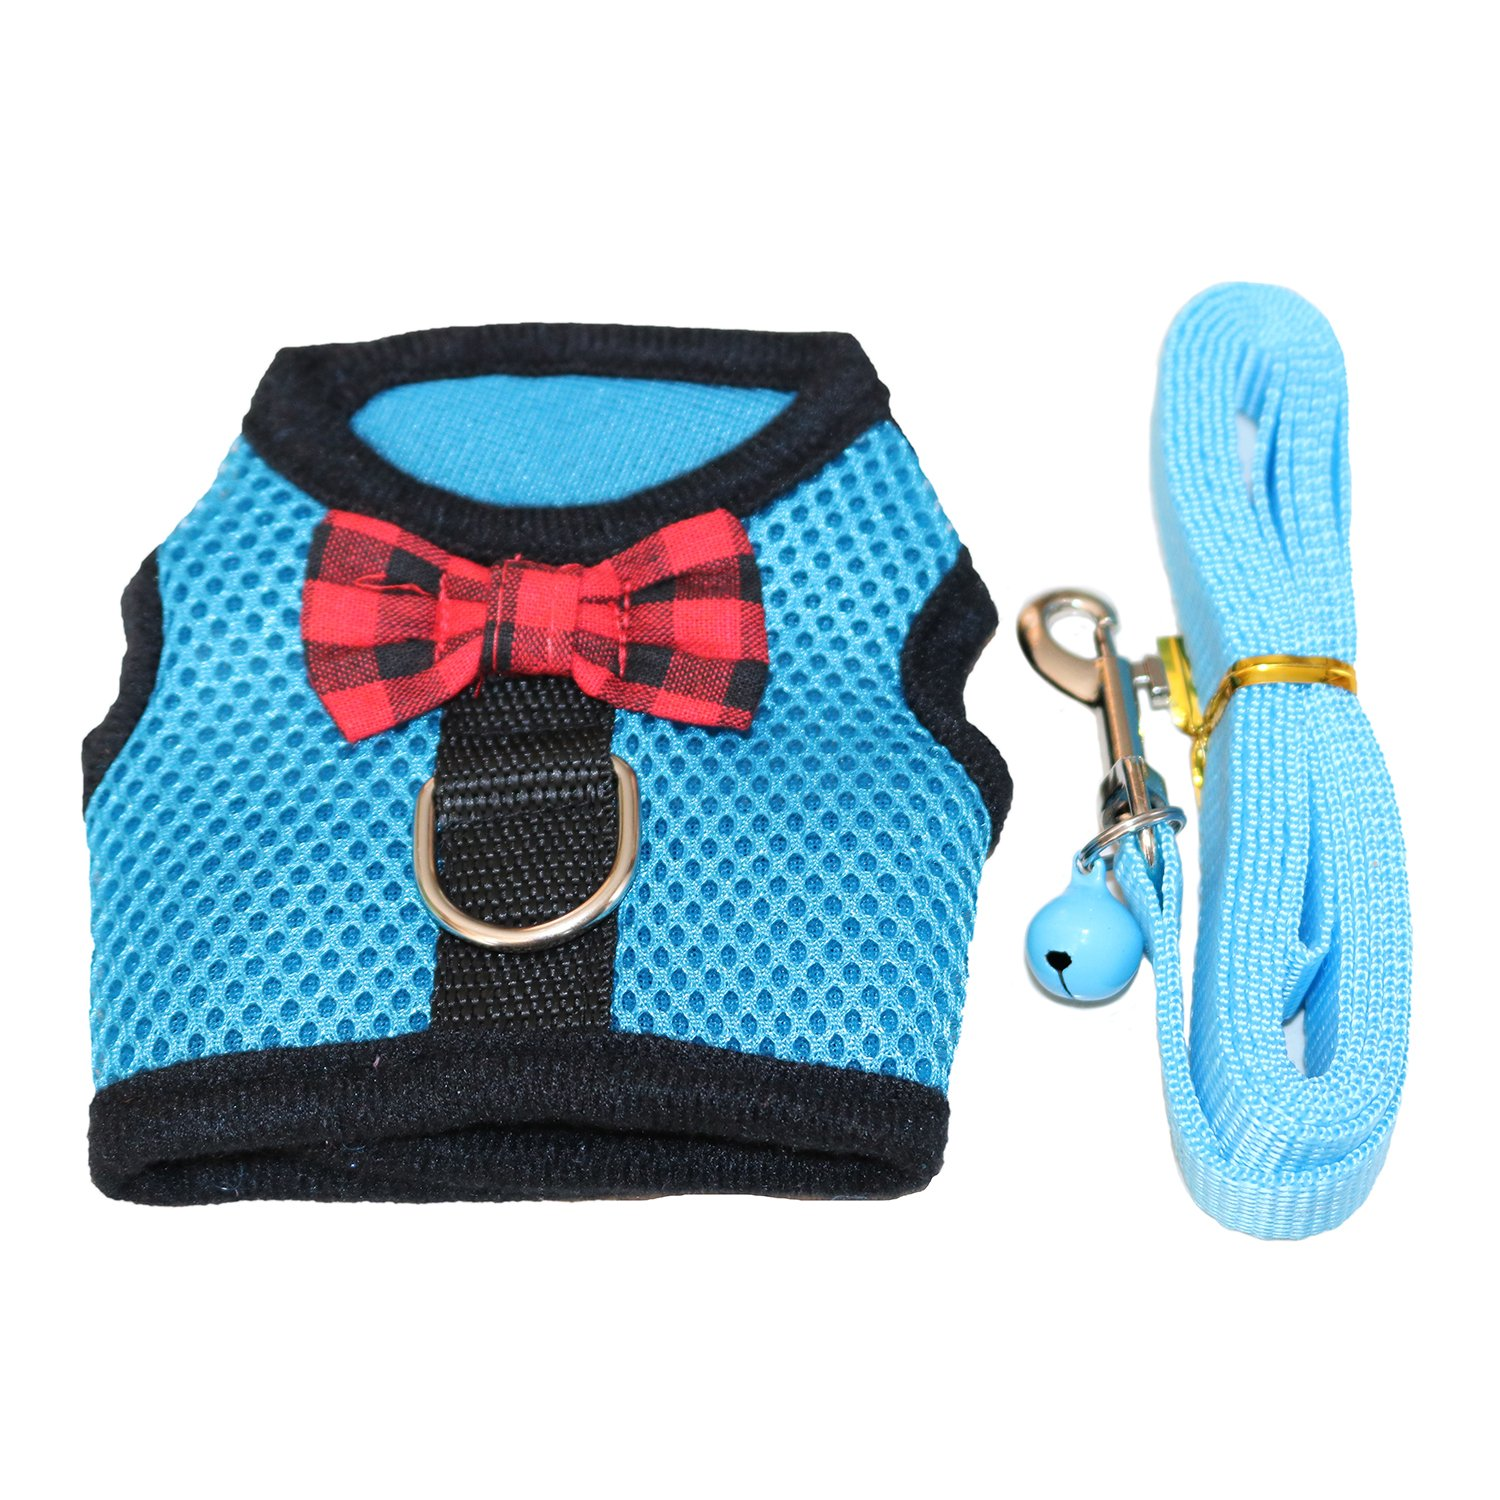 No Pull Comfort Padded Vest for Guinea Pigs RYPET Guinea Pig Harness and Leash Chinchilla and Similar Small Animals Ferret Soft Mesh Small Pet Harness with Safe Bell